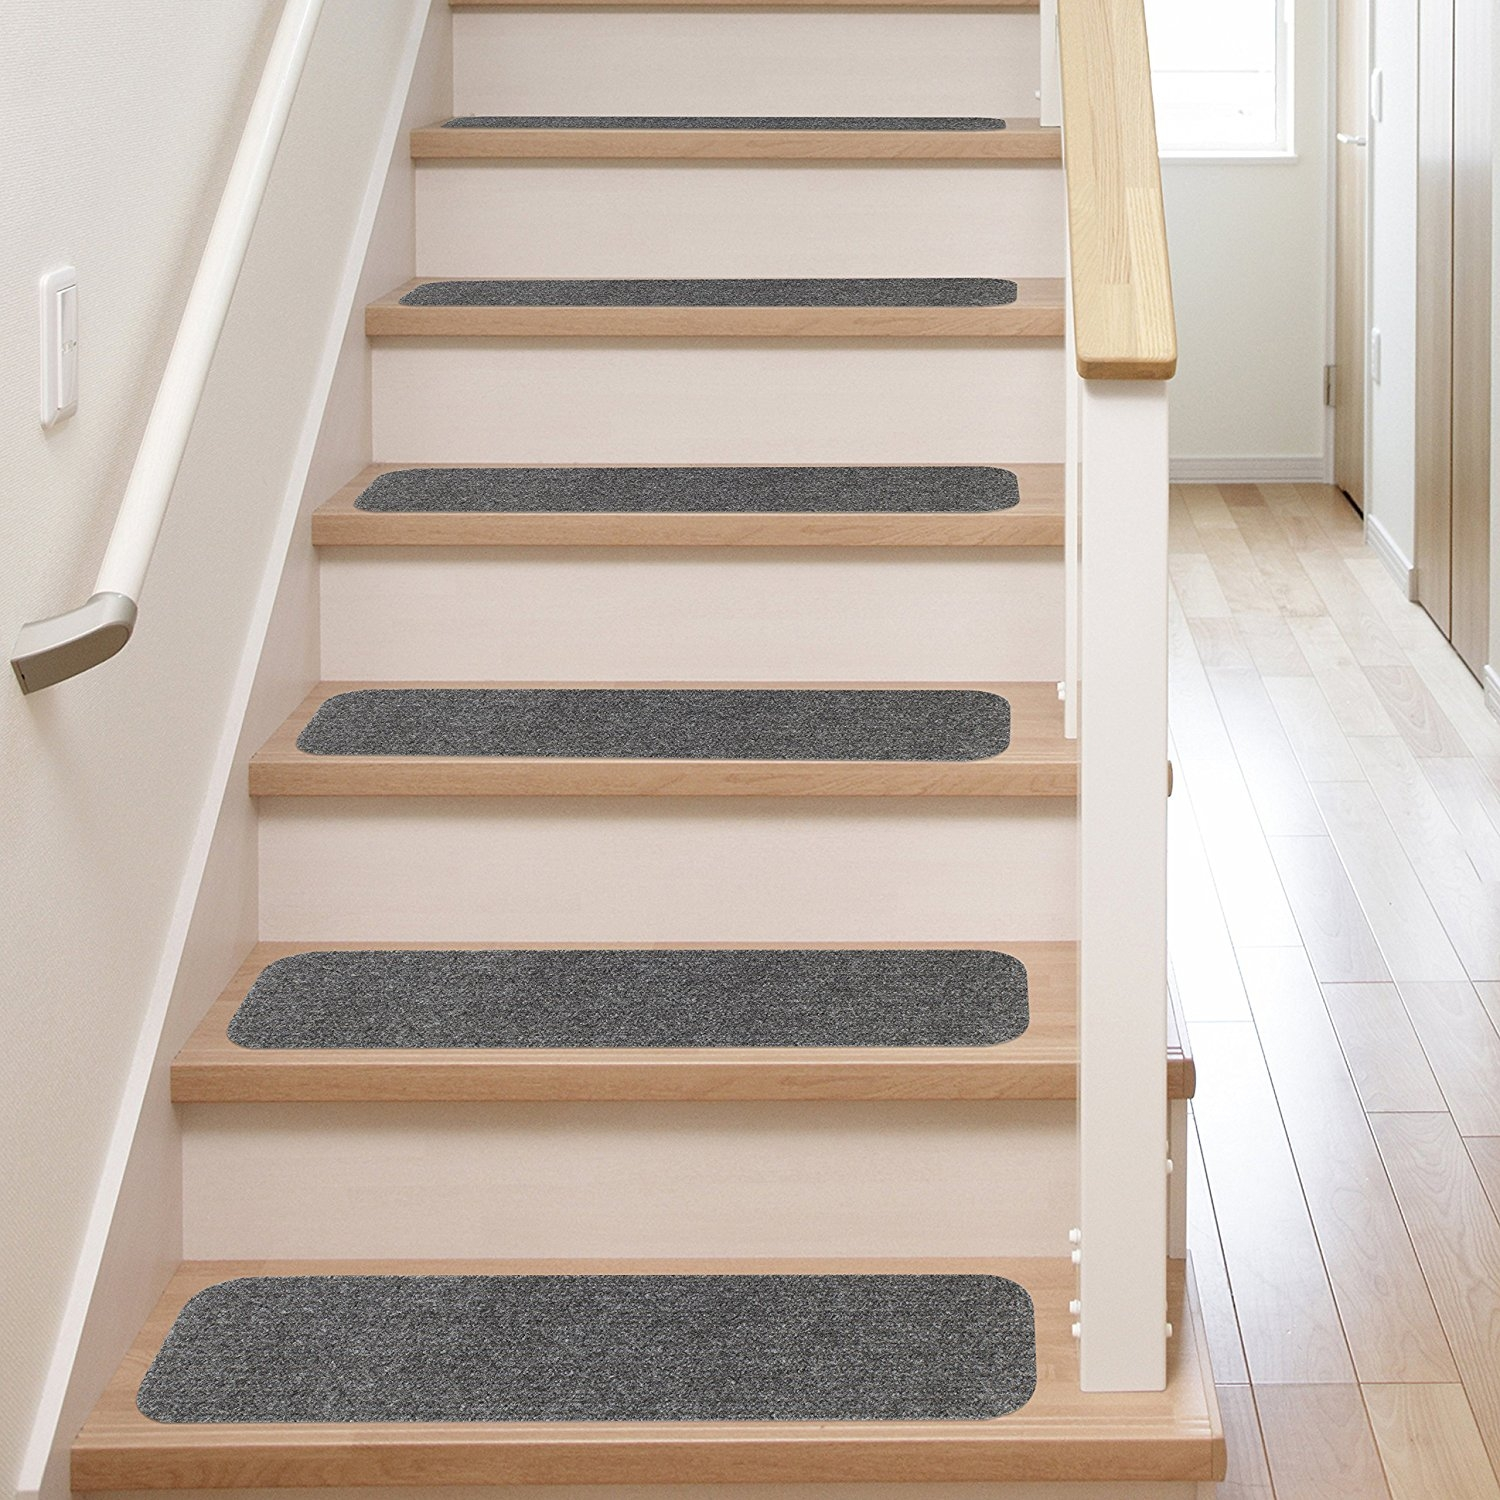 13 Stair Treads Non Slip Carpet Pads Easy Tape Installation With Regard To Indoor Stair Treads Carpet (Image 1 of 15)